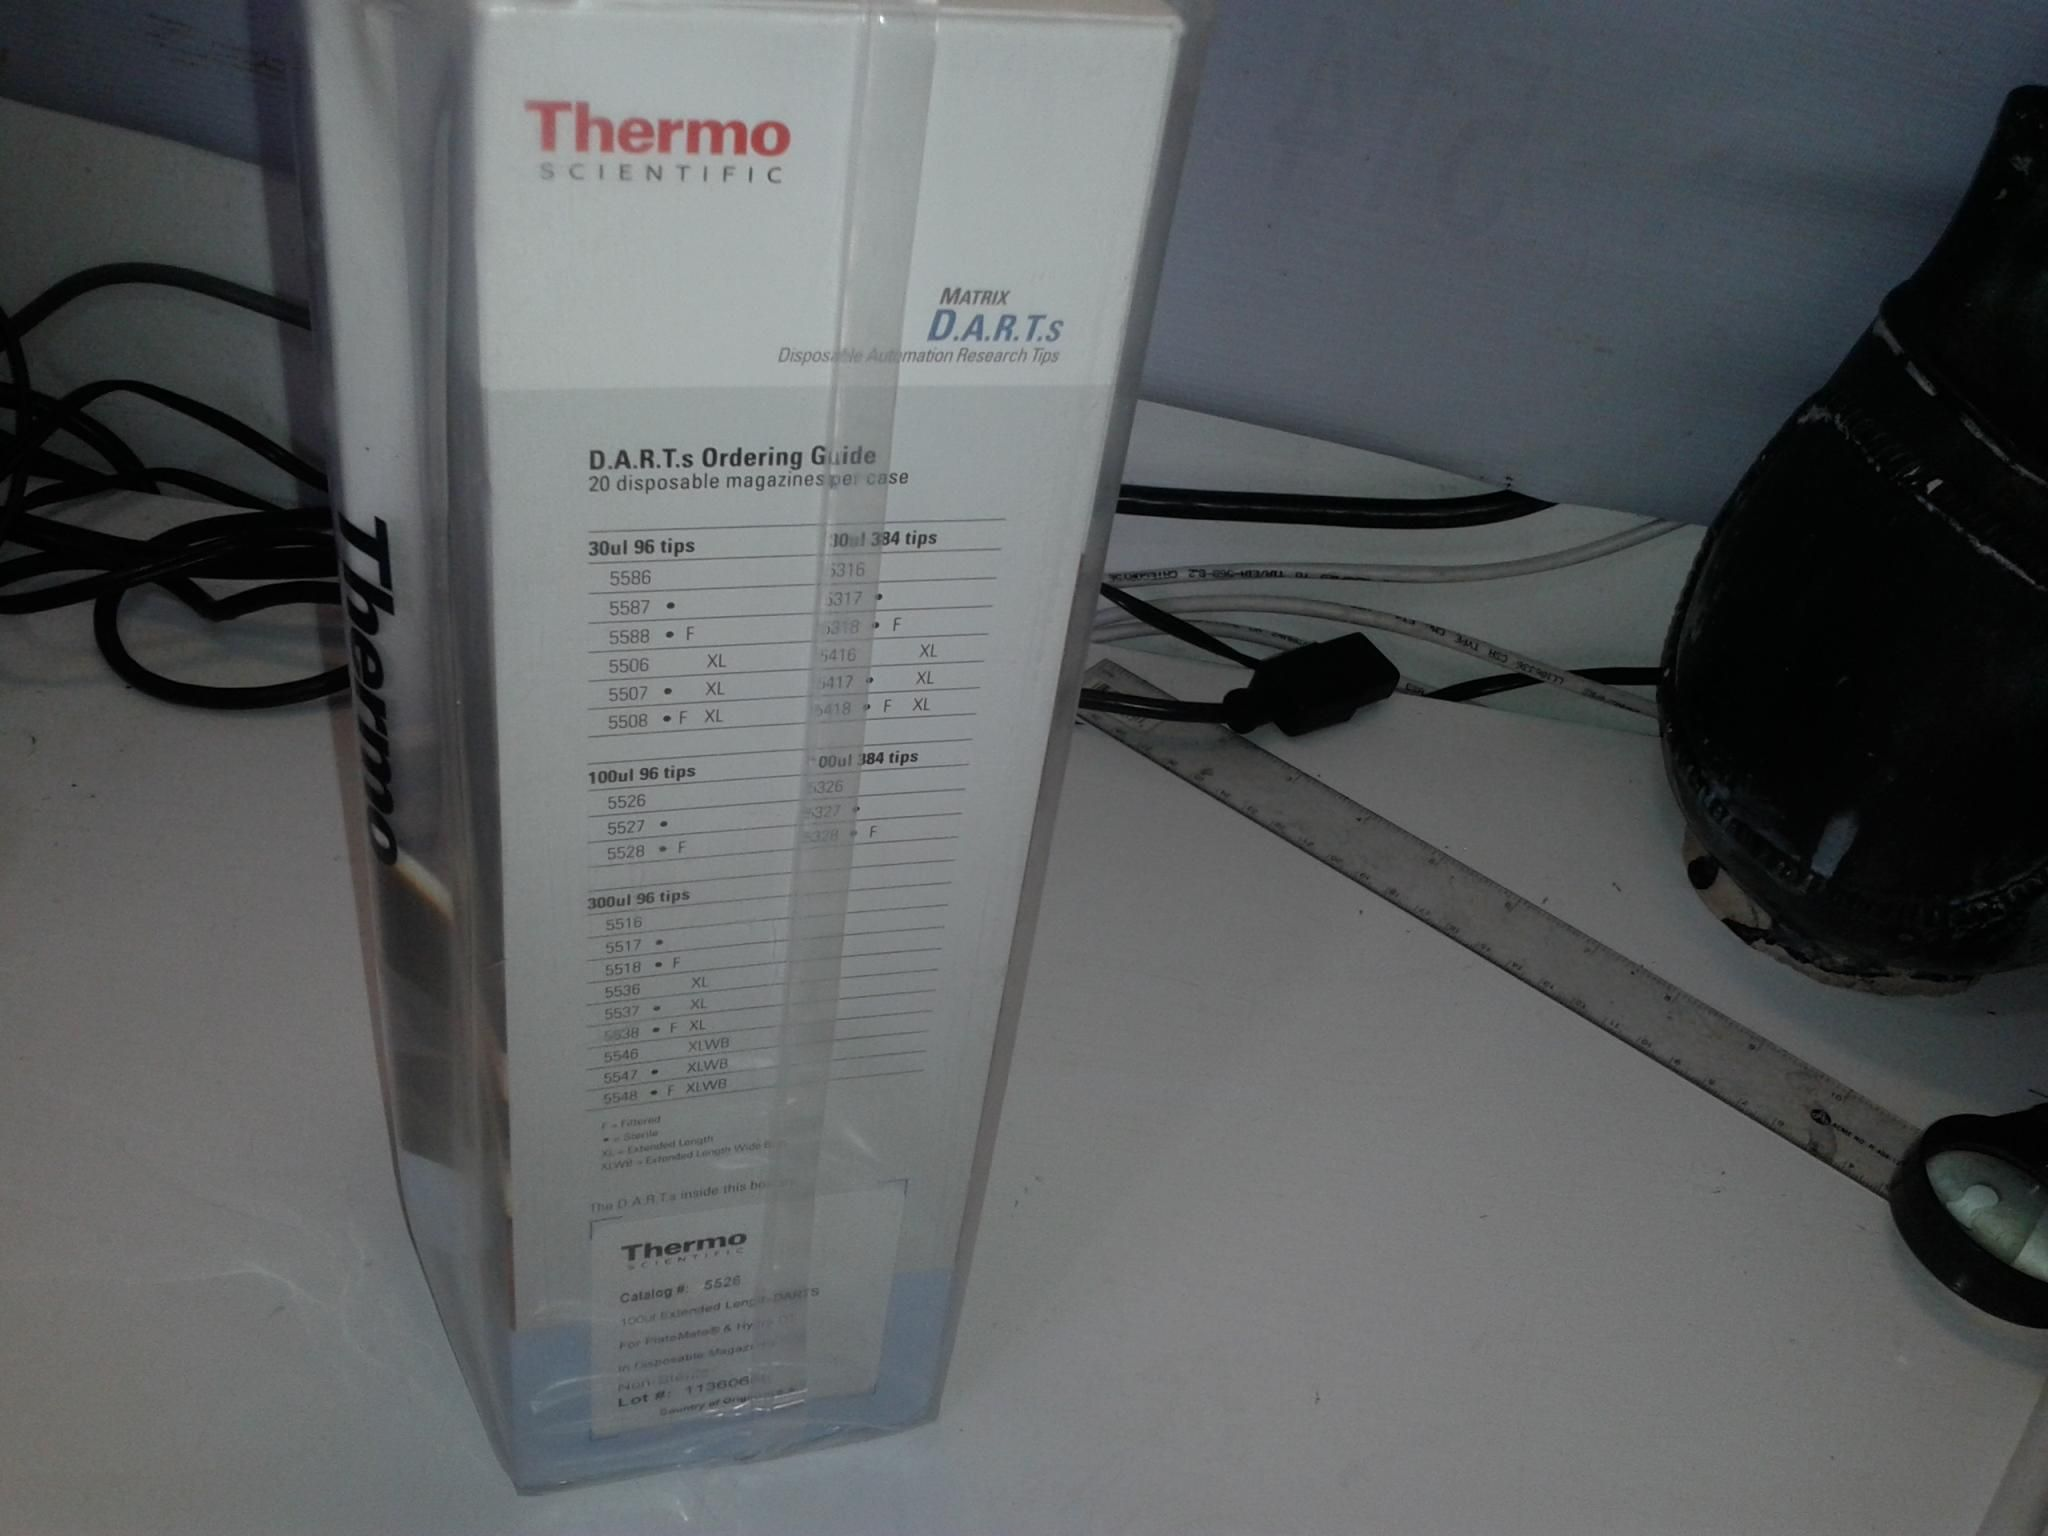 New Thermo 300ul DART disposable automated plate mate cat.5516